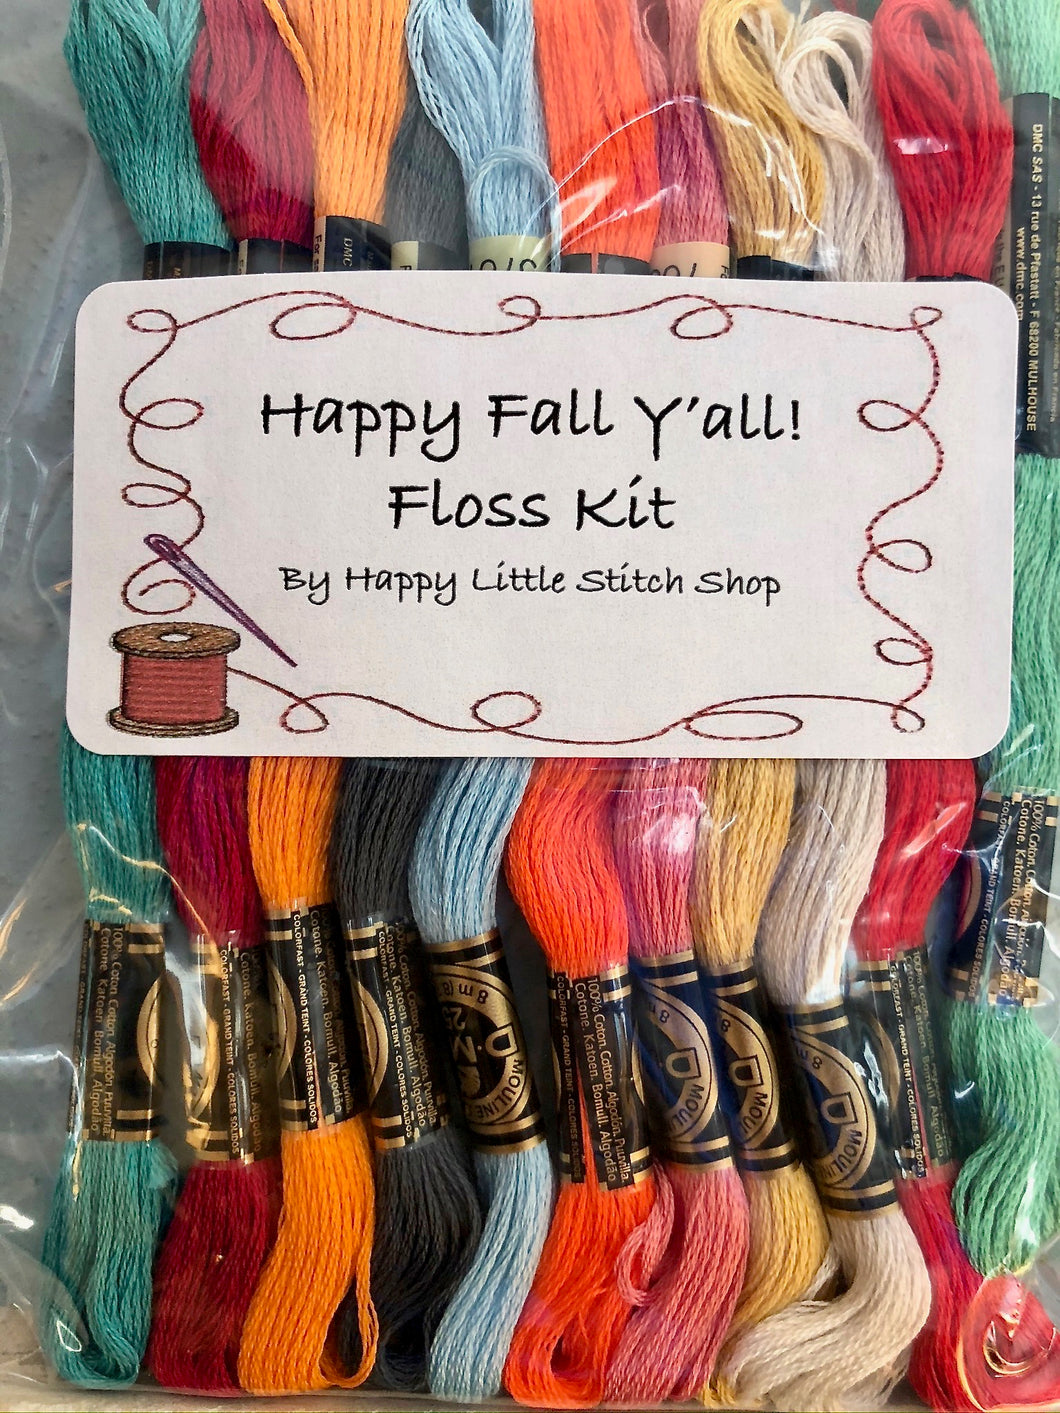 Floss Kit - Happy Fall Y'all by Flamingo Toes